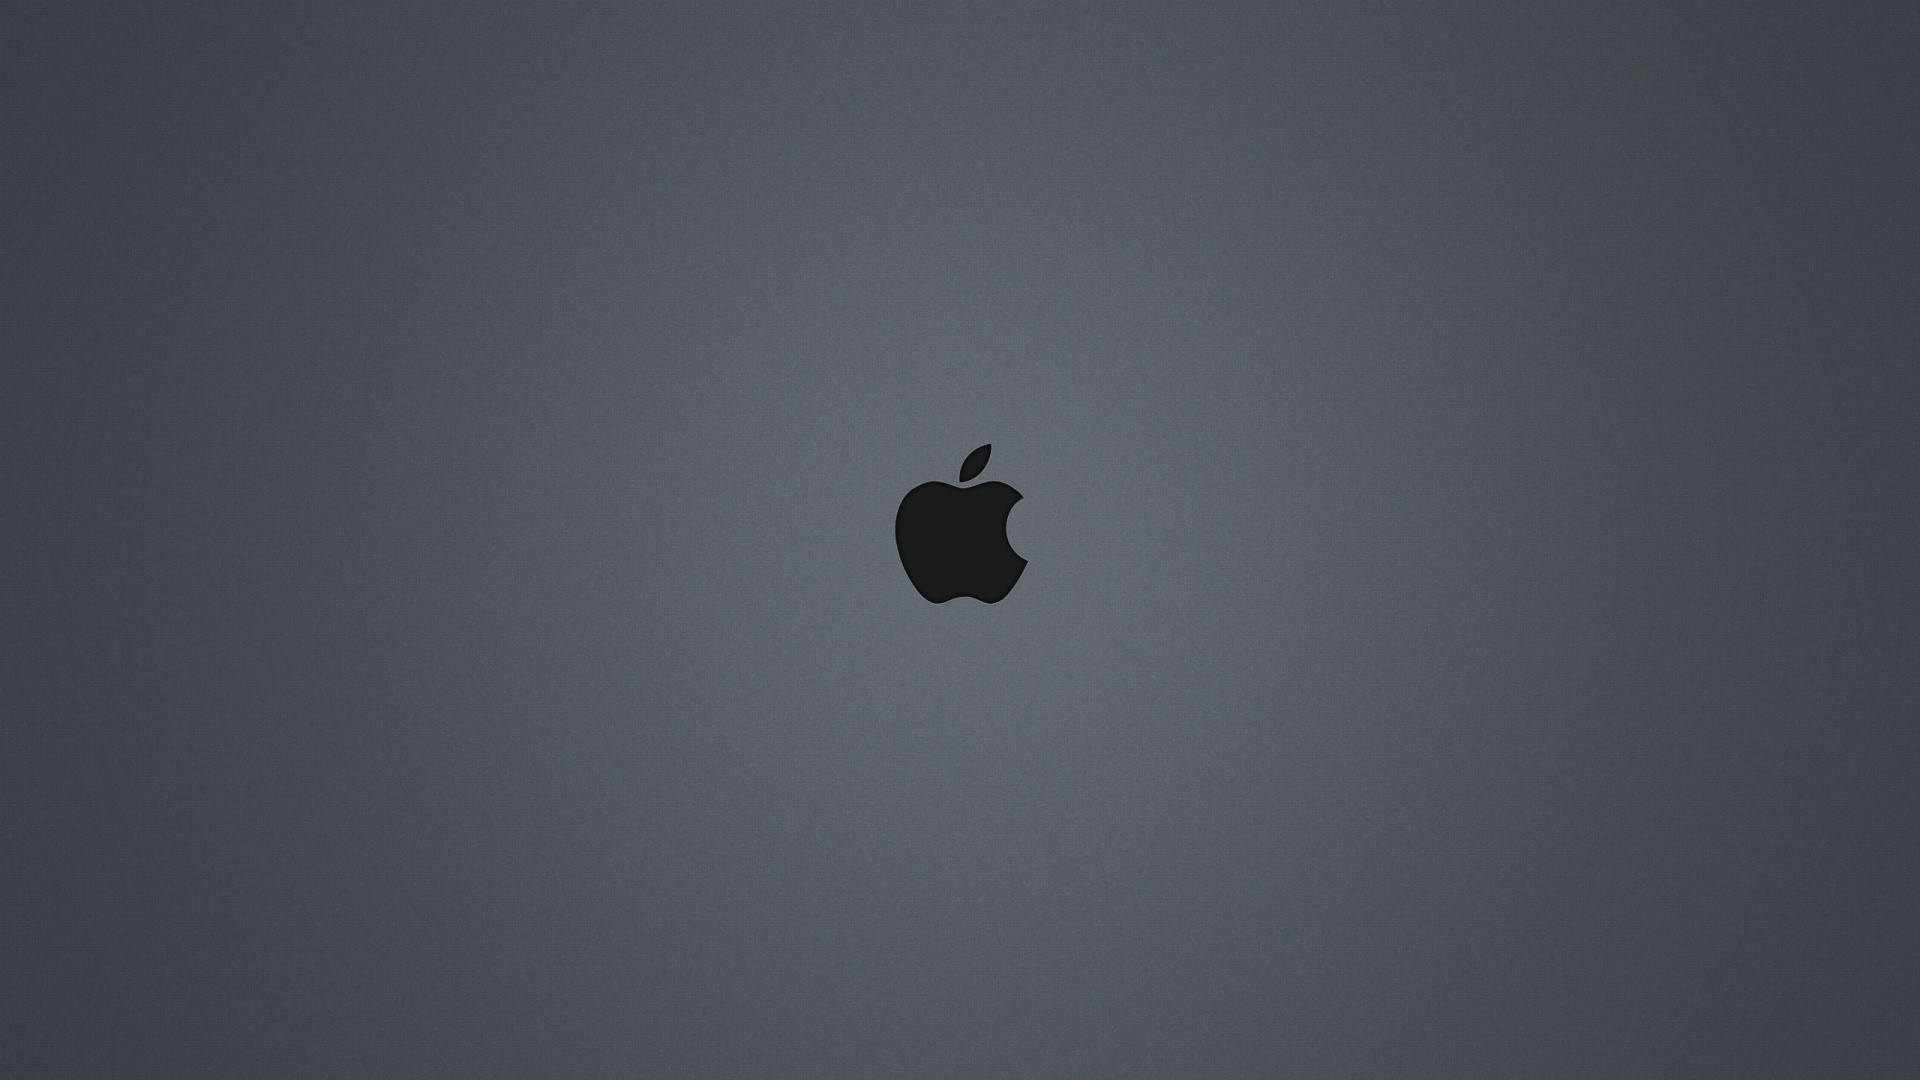 36+ apple wallpapers ·① download free cool hd backgrounds for